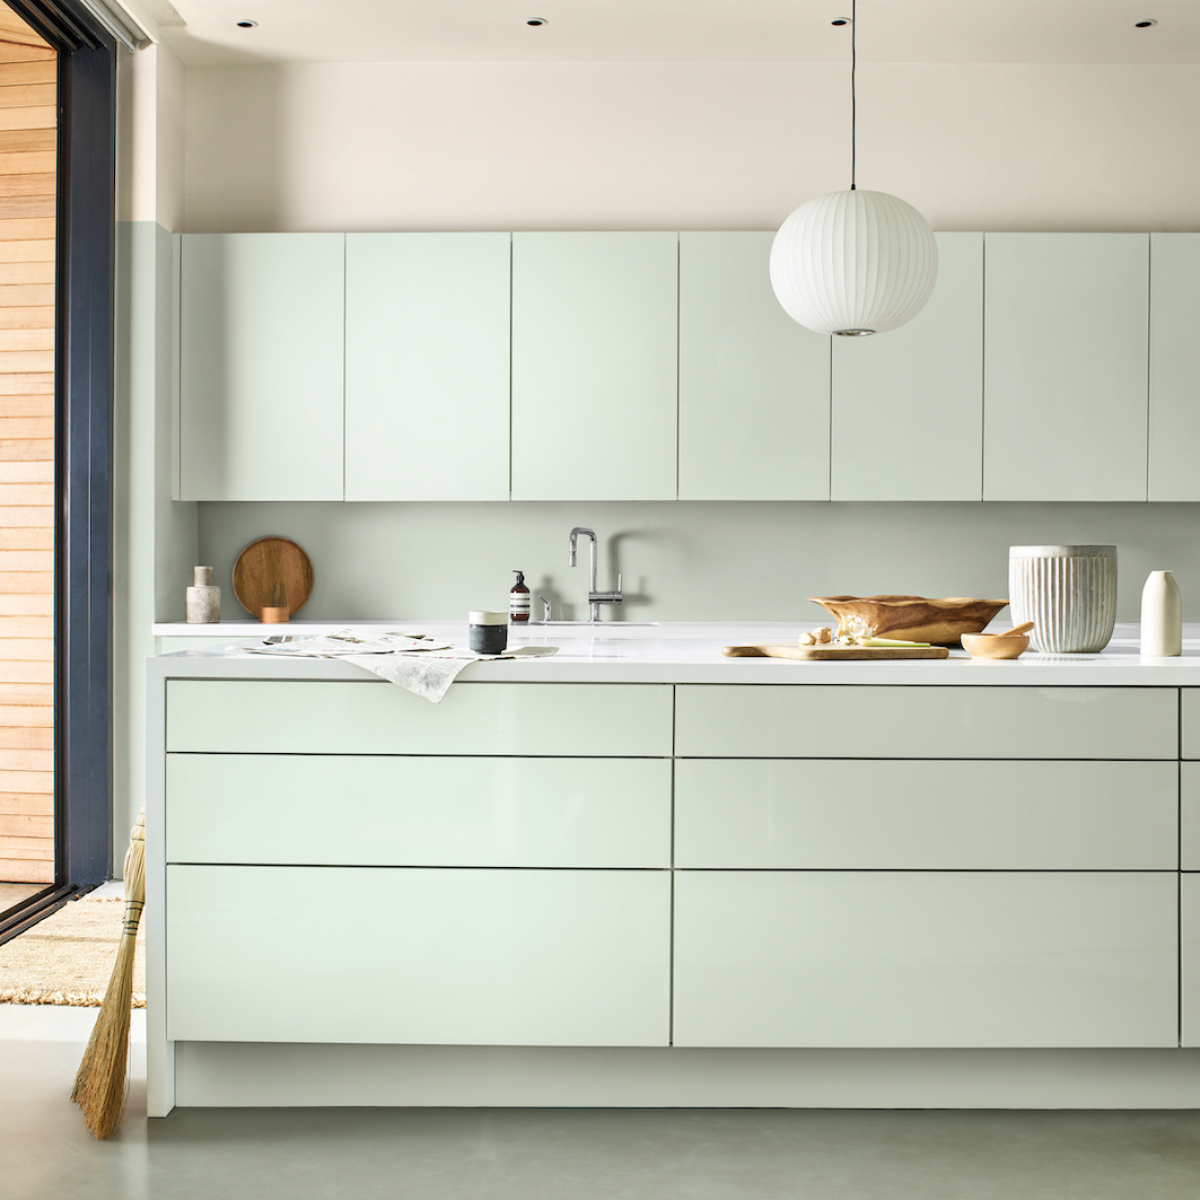 The Dulux Colour of the Year has been announced as Tranquil dawn. A soft, grey-green whihc is aimed to create a feeling of calm, is a versatile choice on a modern kitchen and works well with the black sliding patio doors. #dulux #sophierobinson #tranquildawn